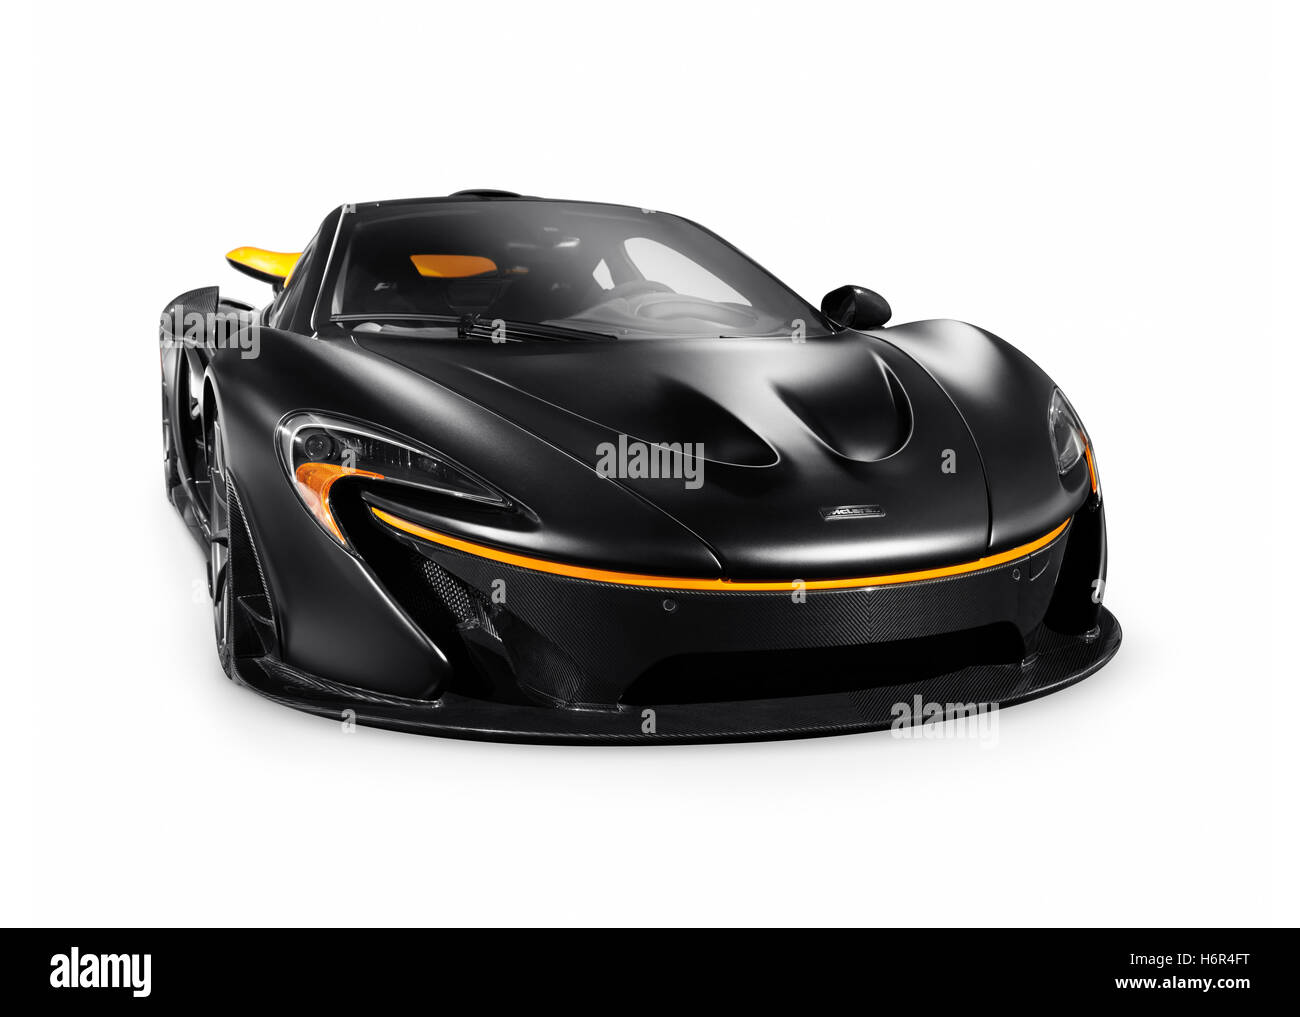 matt schwarz 2015 mclaren p1 plug in hybrid supersportwagen isoliert sportwagen auf wei em. Black Bedroom Furniture Sets. Home Design Ideas